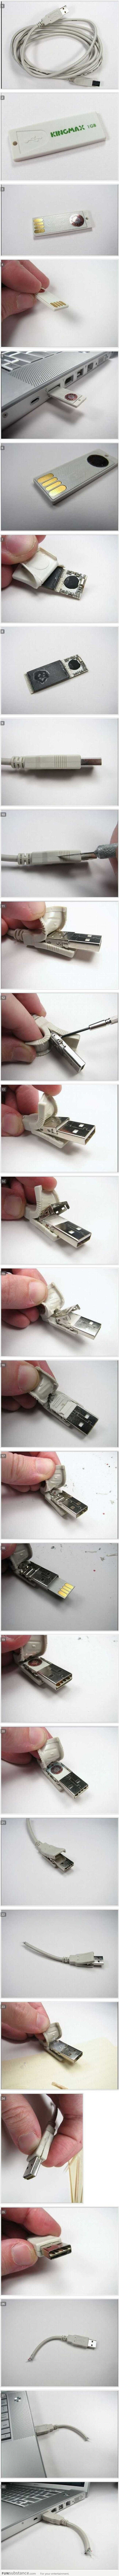 How To Make A Cool USB Flash Drive